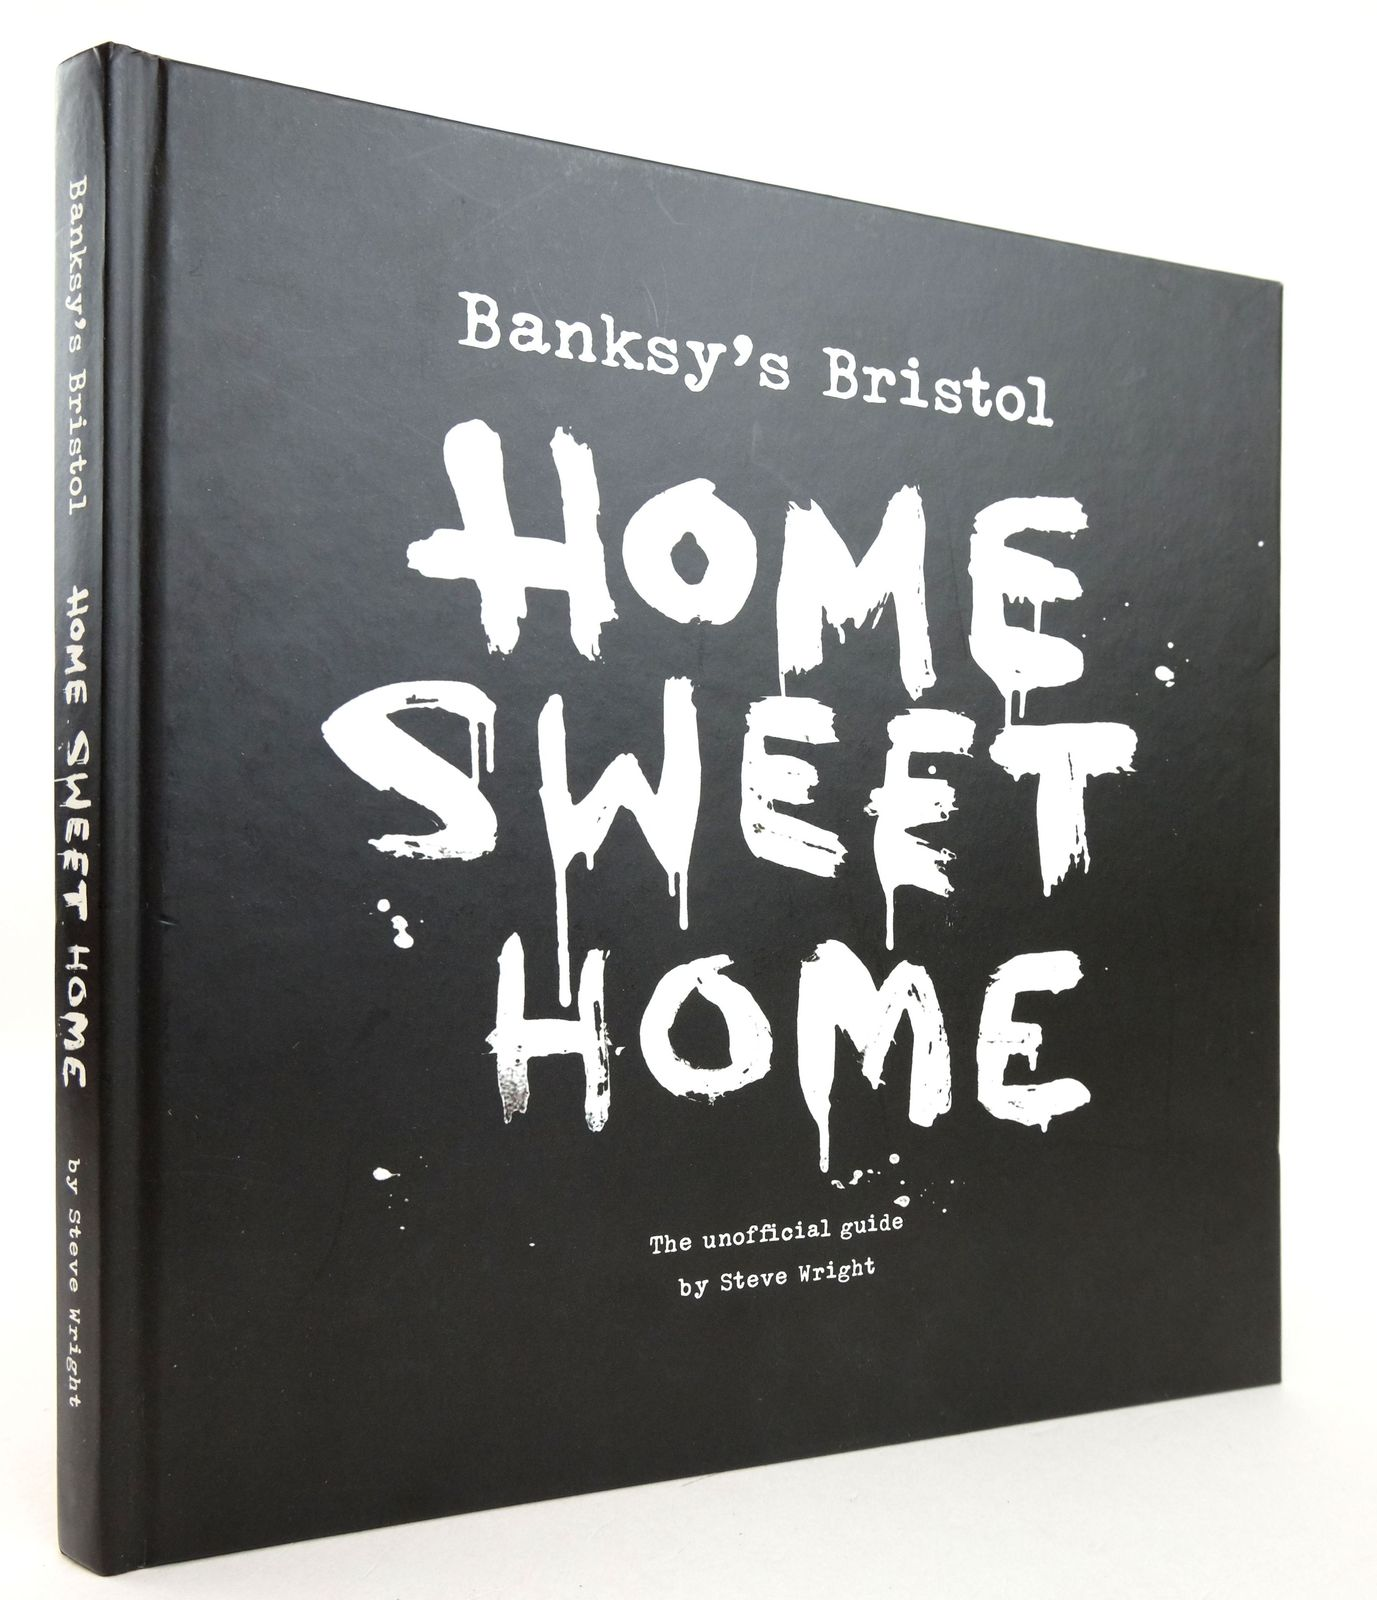 Photo of BANKSY'S BRISTOL: HOME SWEET HOME